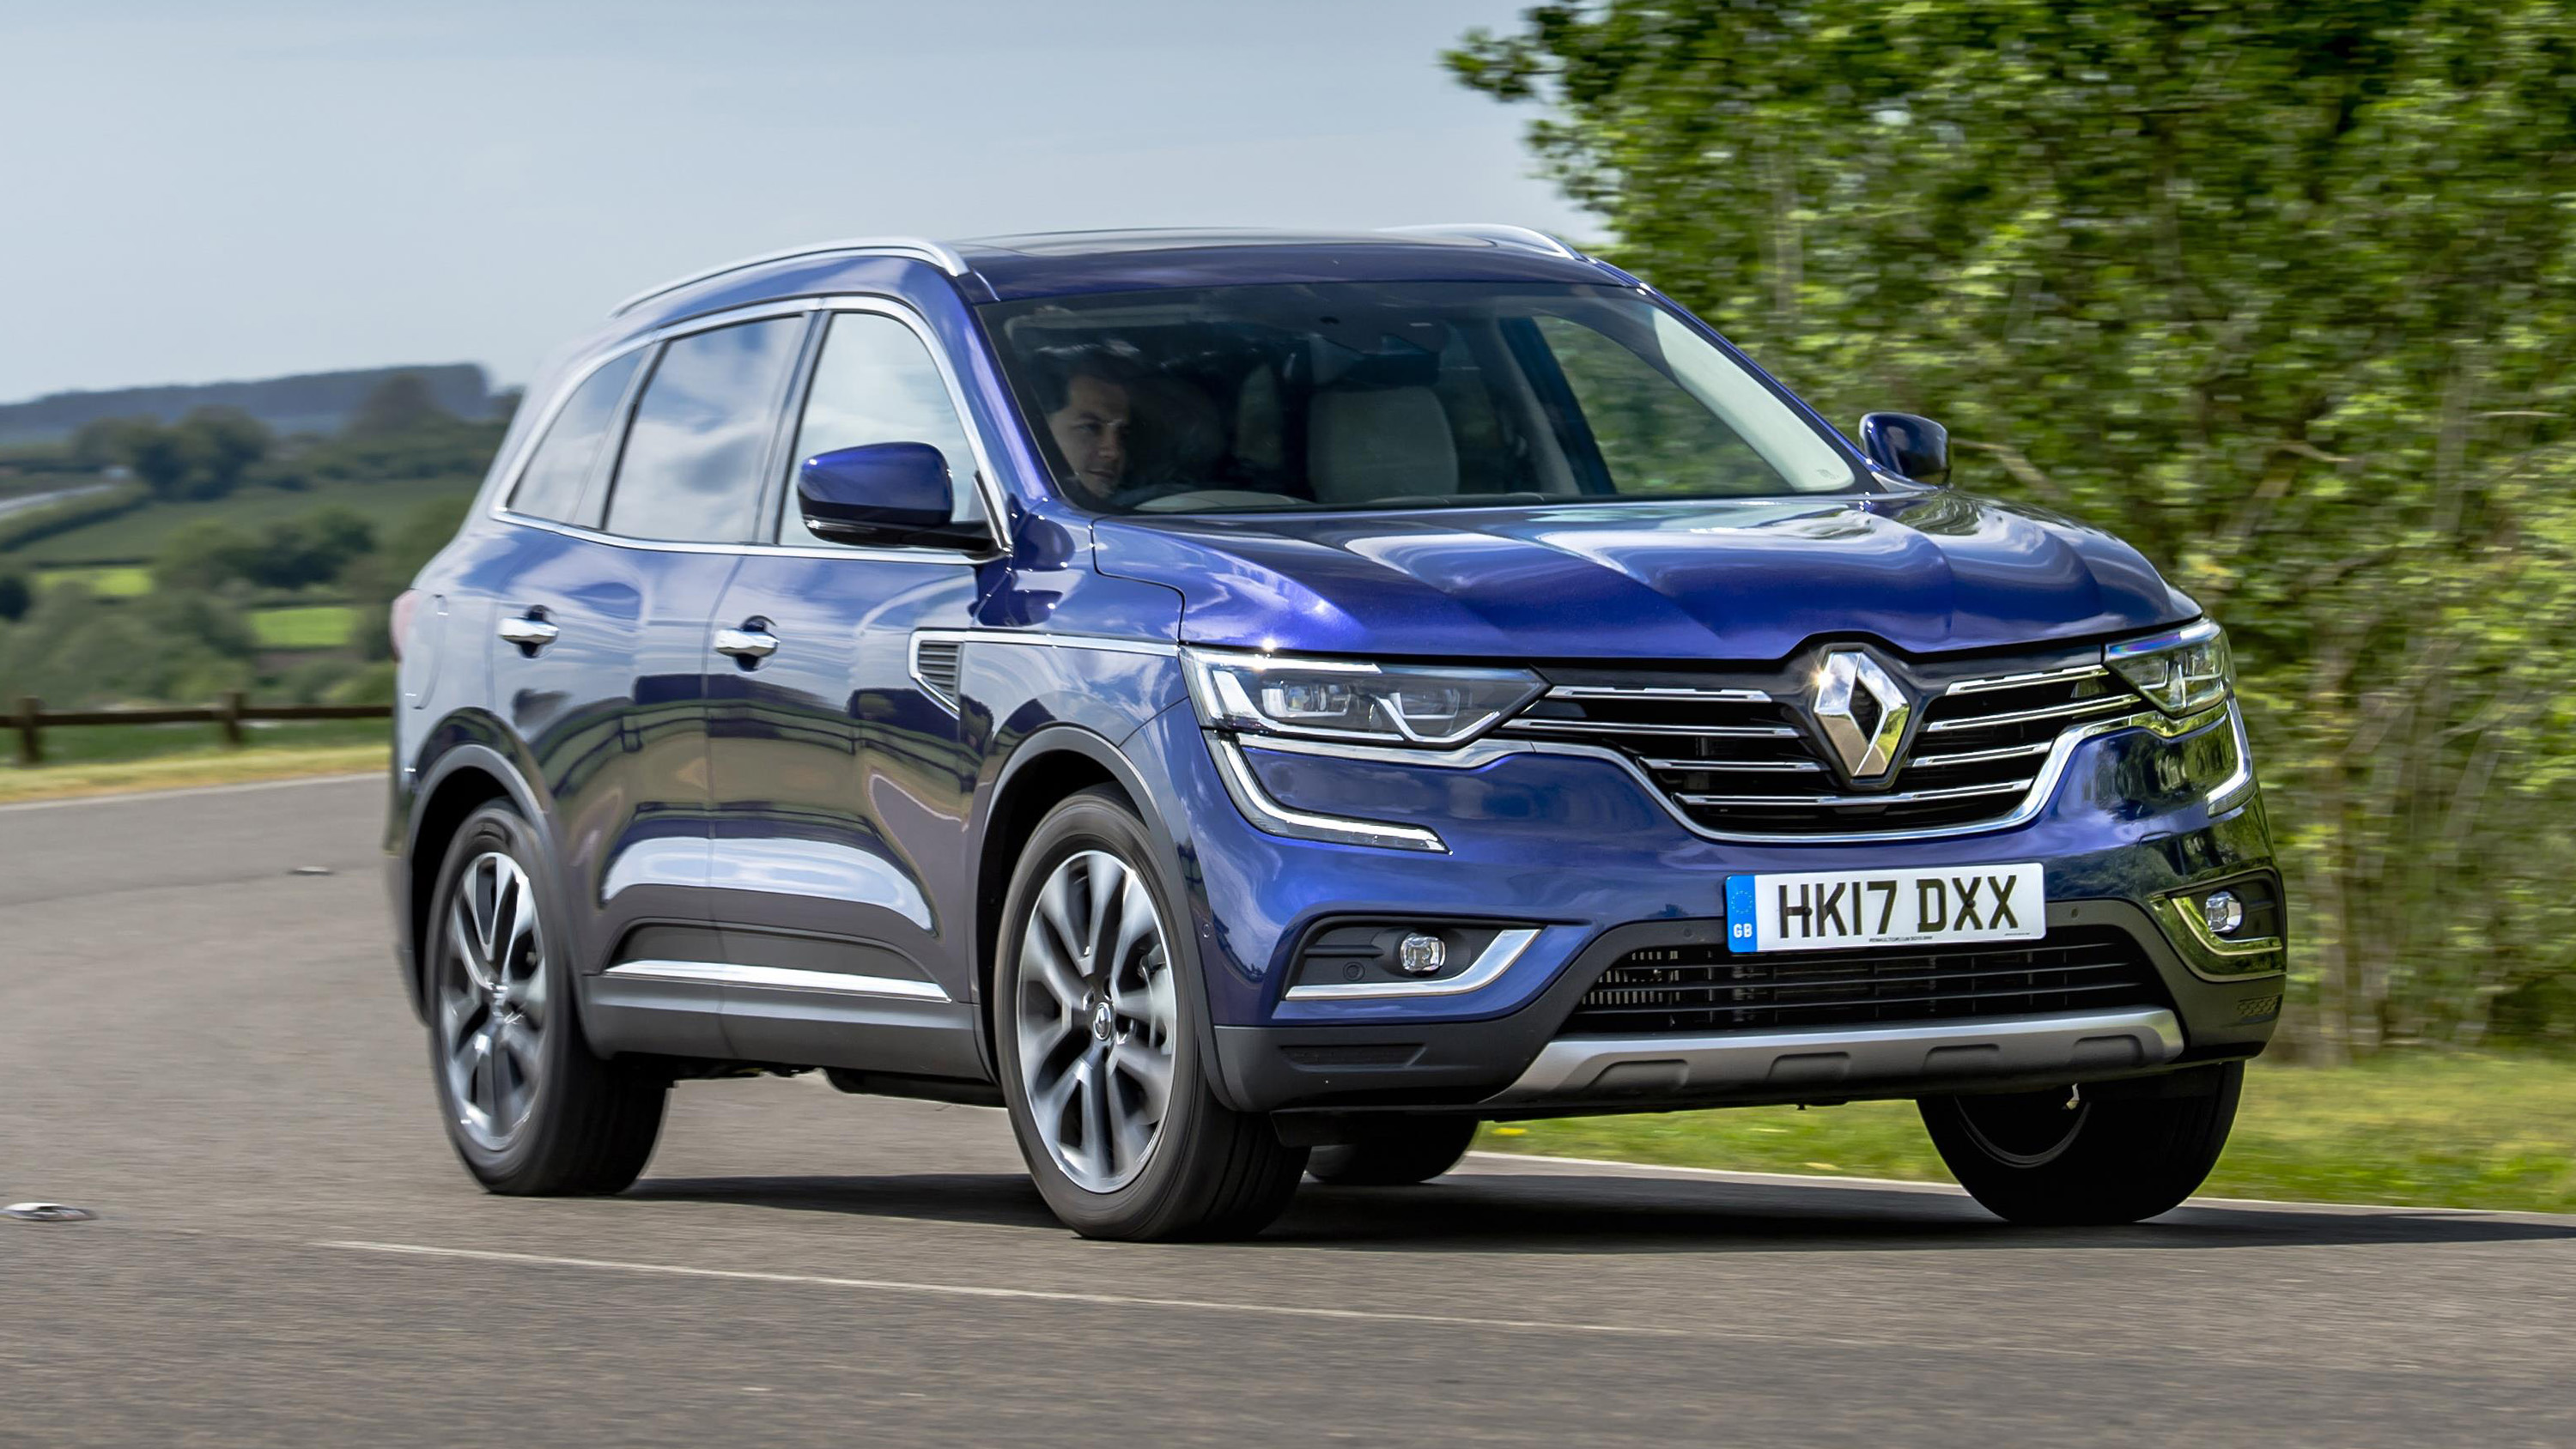 Renault Koleos Reliability Car Reviews 2018 Wiring Diagram Review Value Suv Driven In The Uk Top Gear